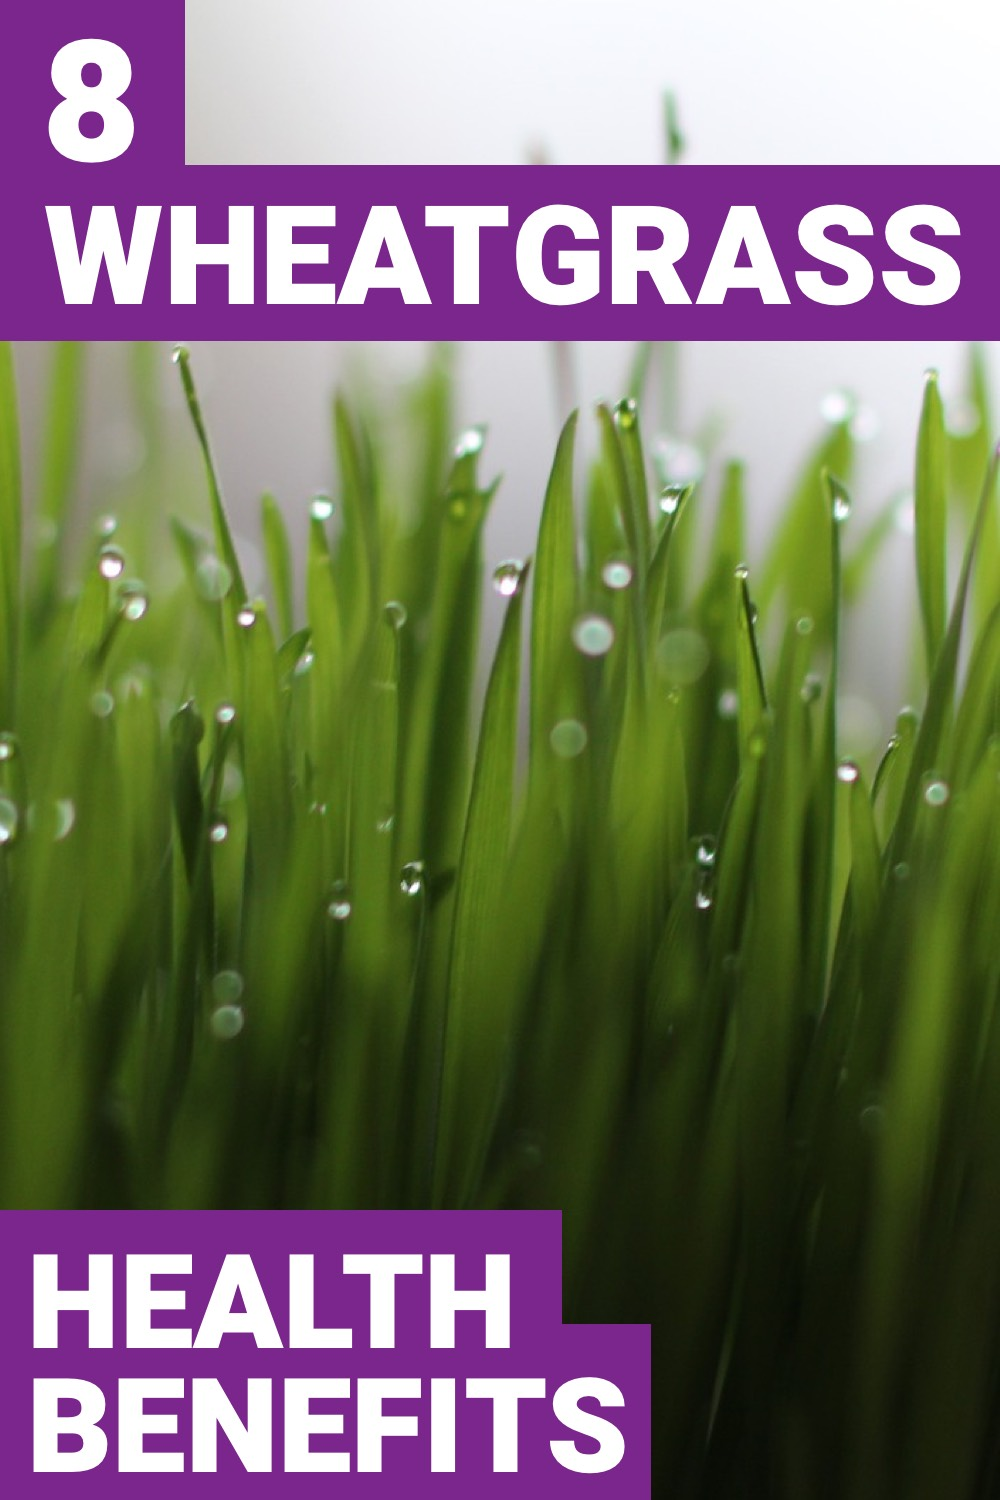 If you want something healthy to incorporate in your diet, consider wheatgrass. Here are 8 wheatgrass benefits you'll love.